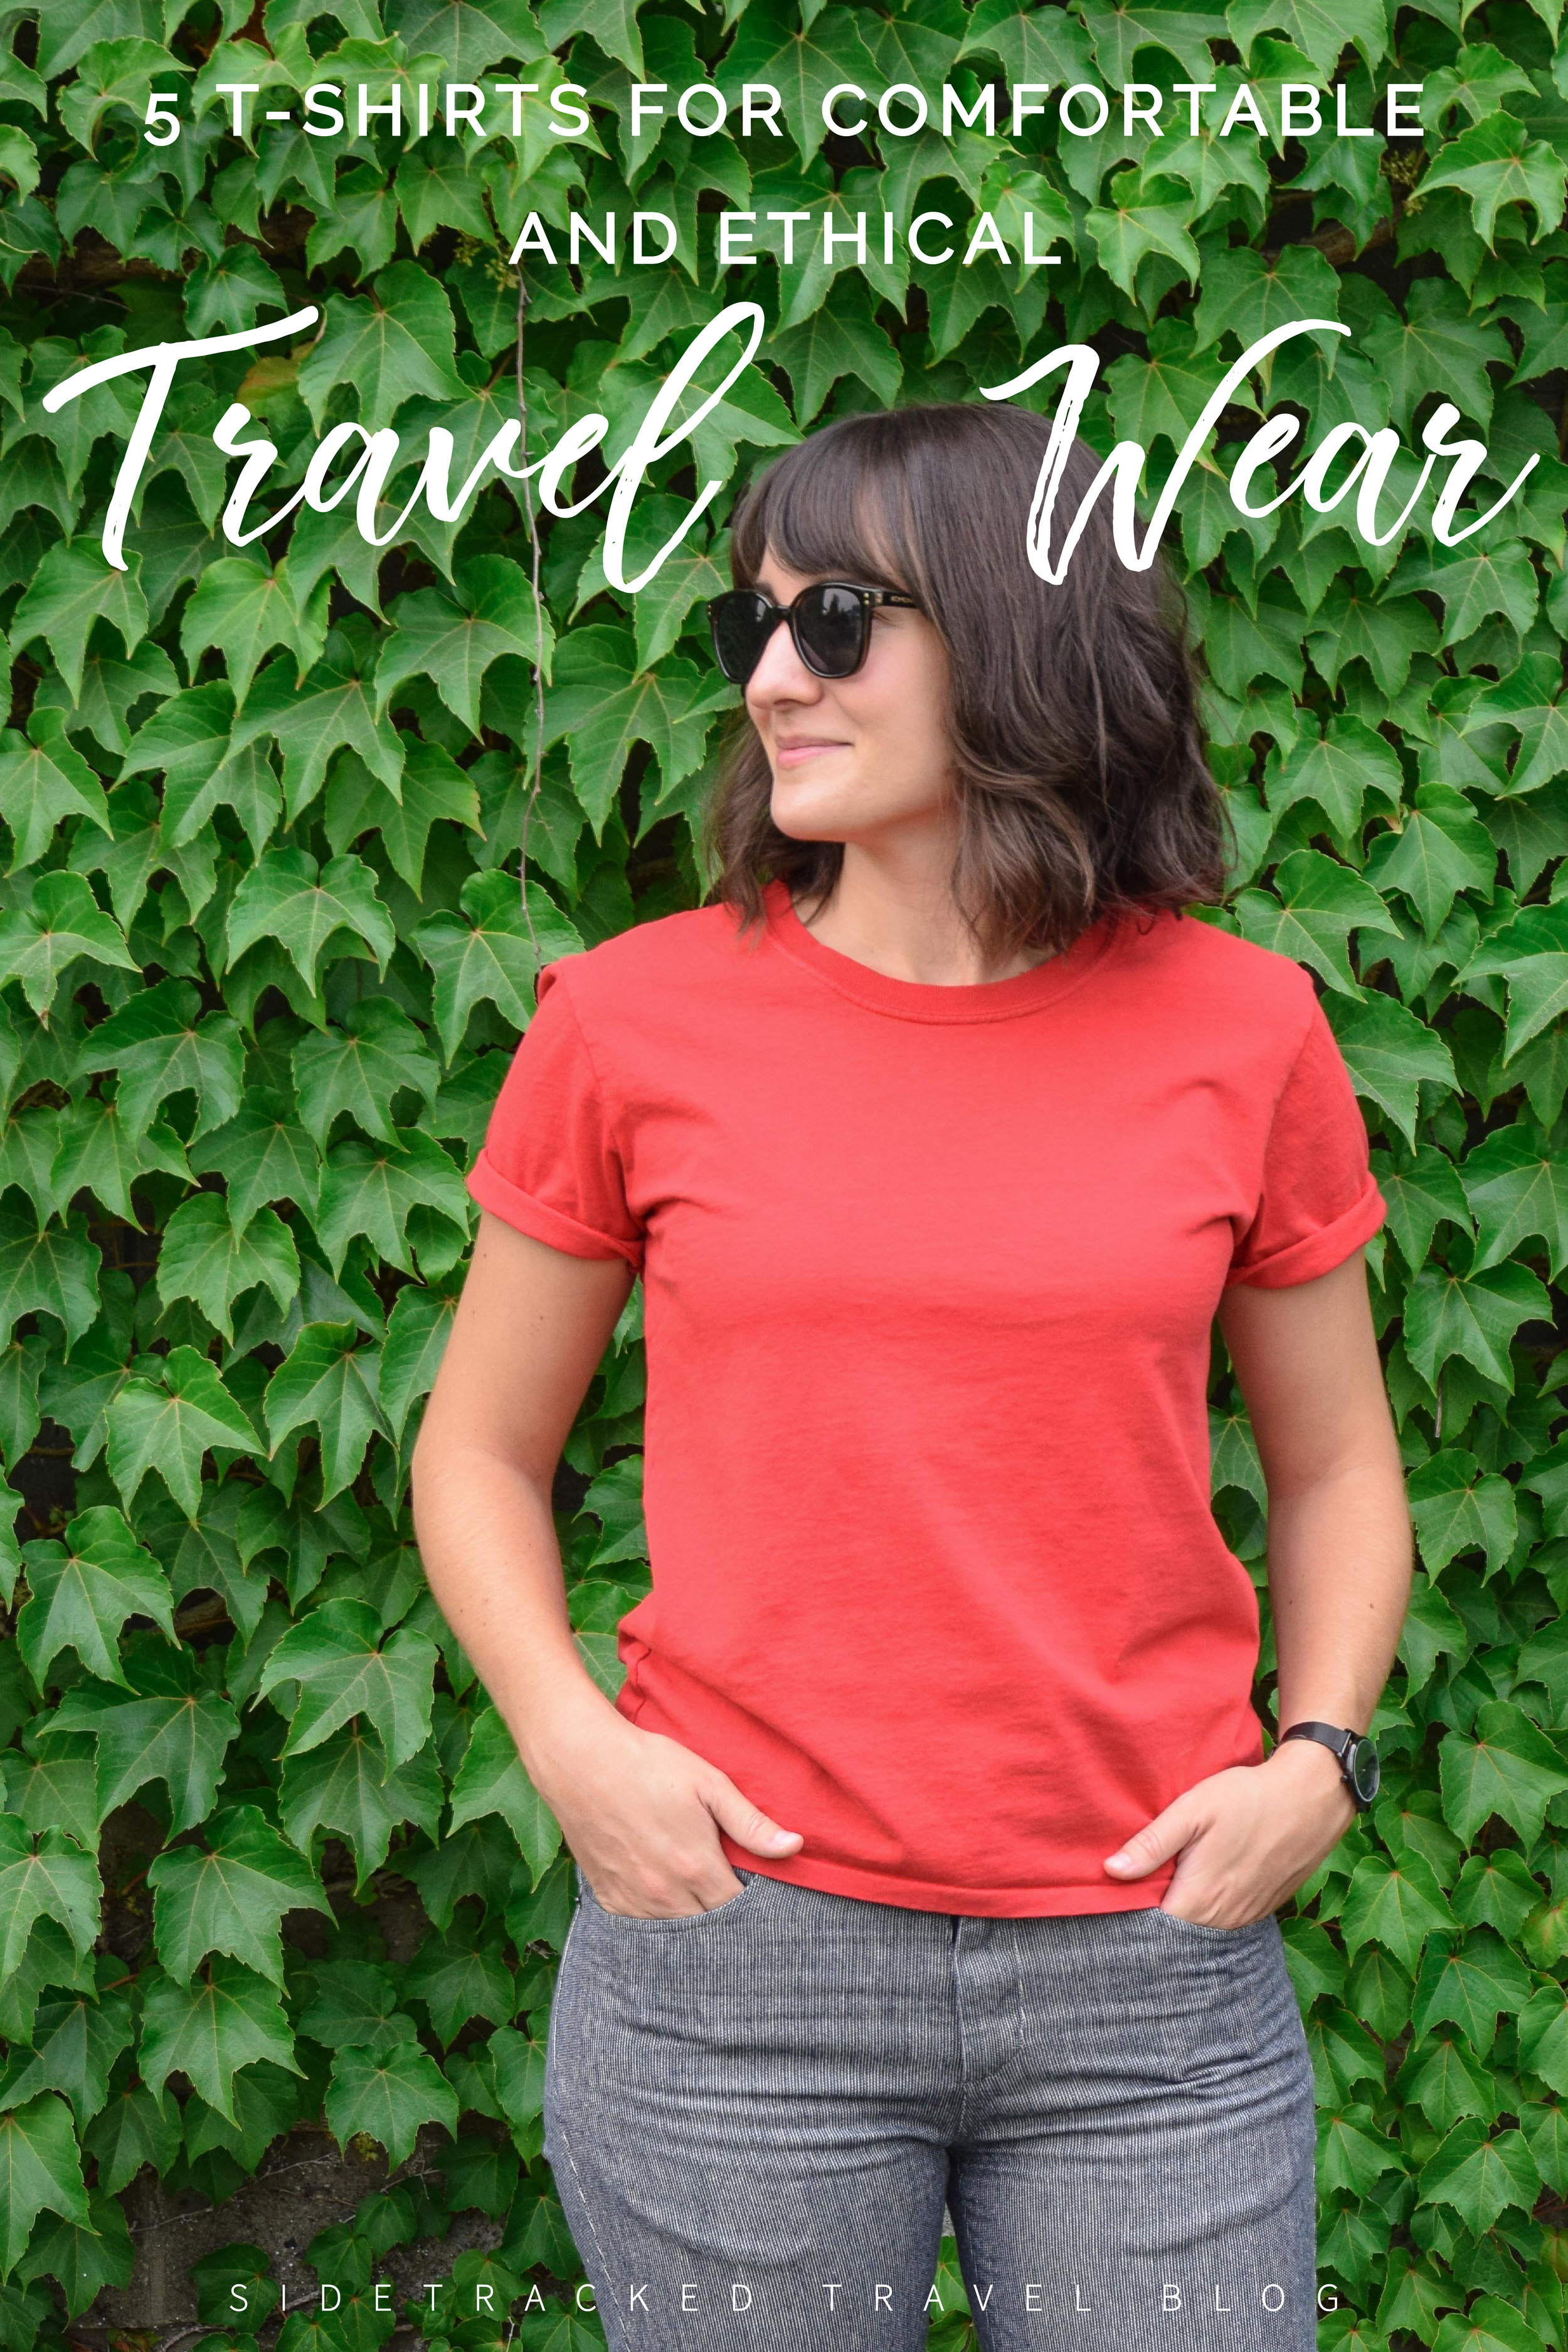 Packing the right travel clothing can make all the difference in planning a perfect trip. For your next getaway, these 5 t-shirts are ideal - plus they're ethically made and beyond comfortable!